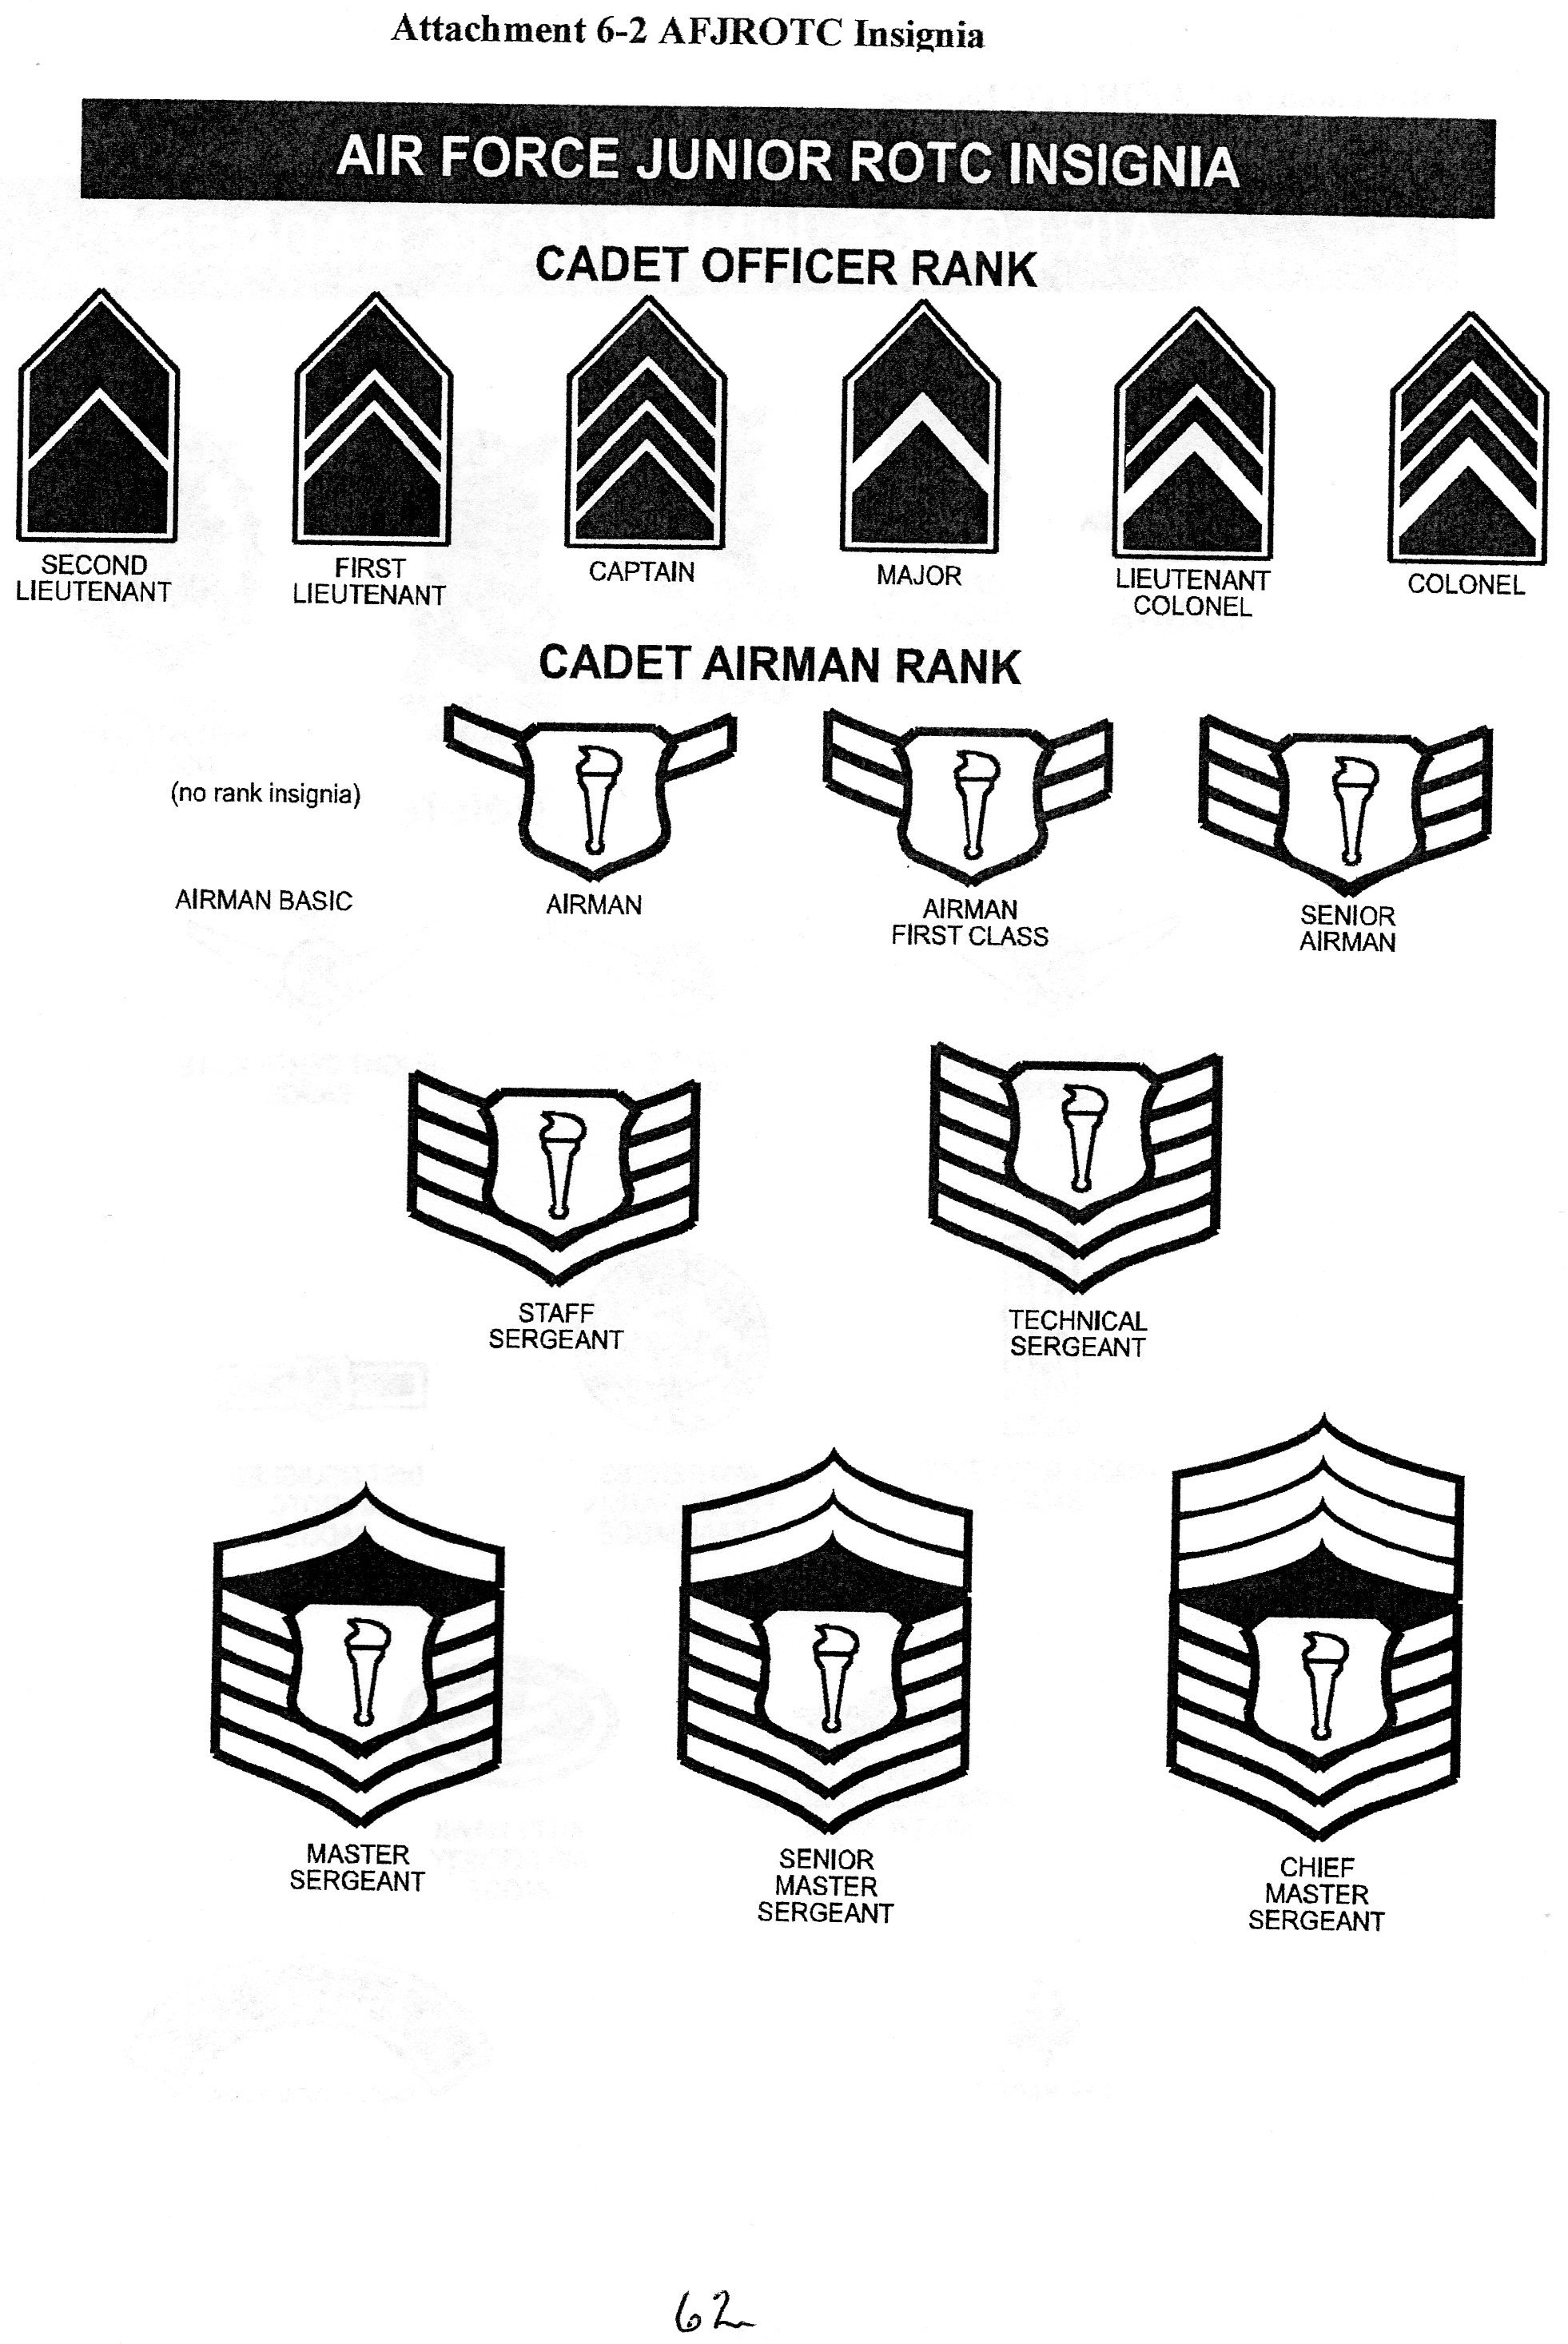 List of Synonyms and Antonyms of the Word: Afjrotc Insignia